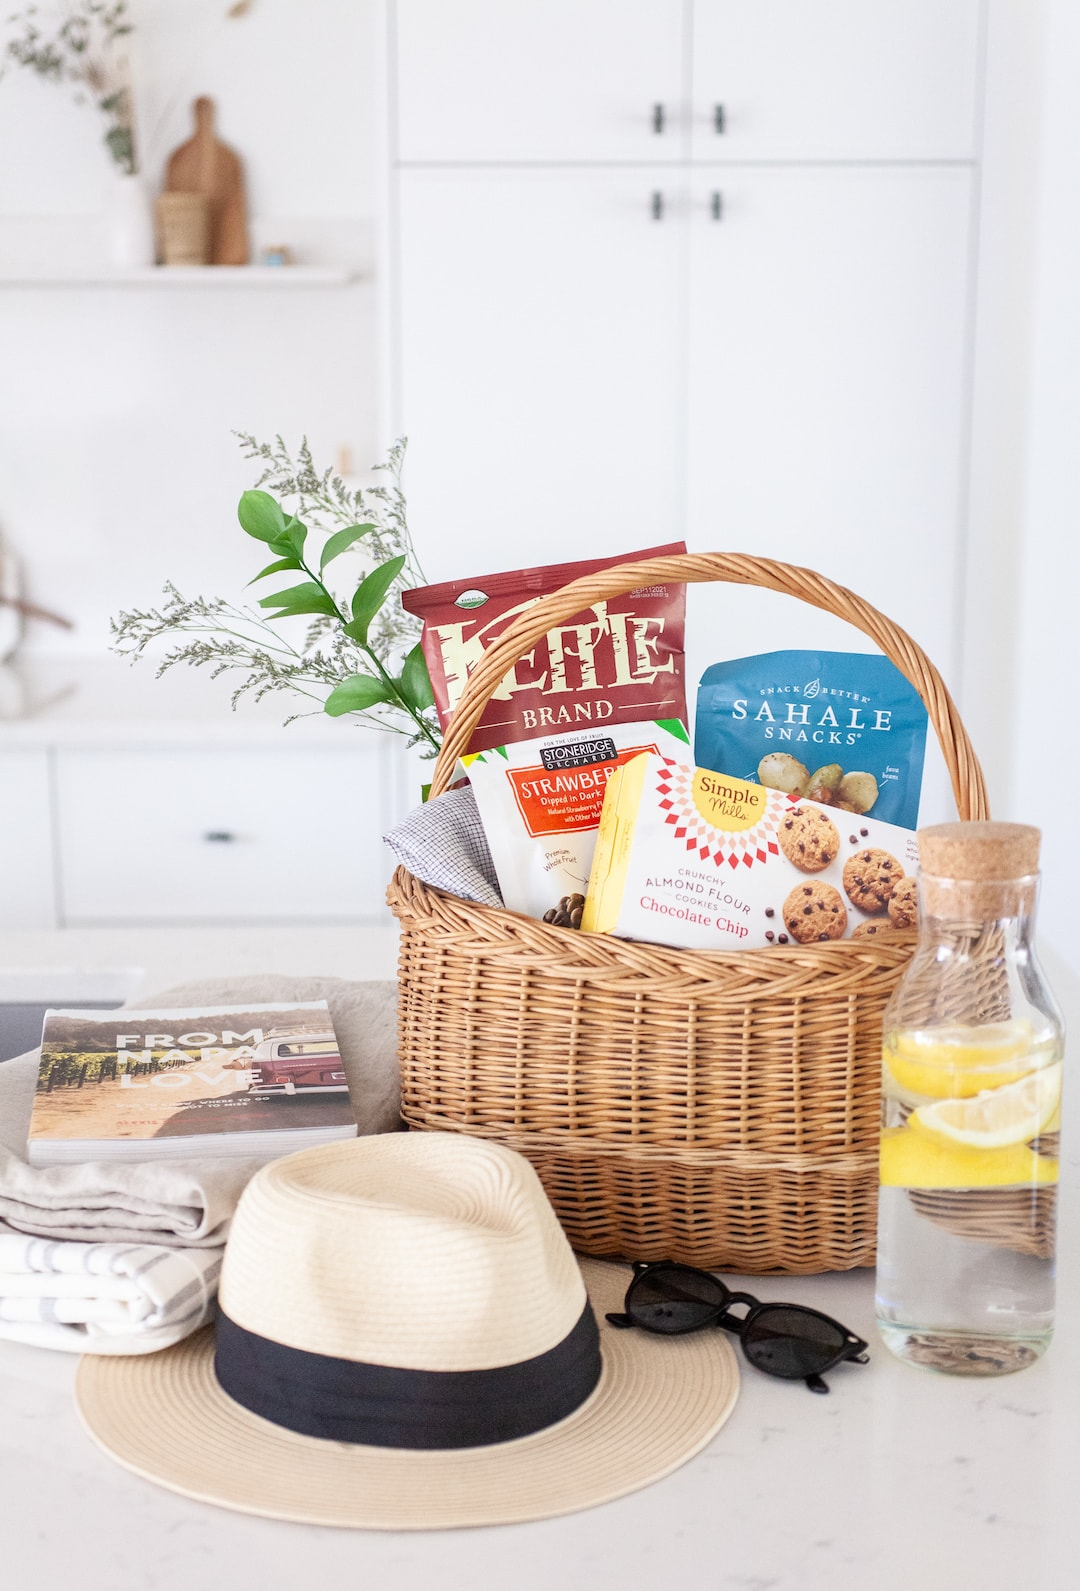 Basket on a kitchen counter filled with snacks